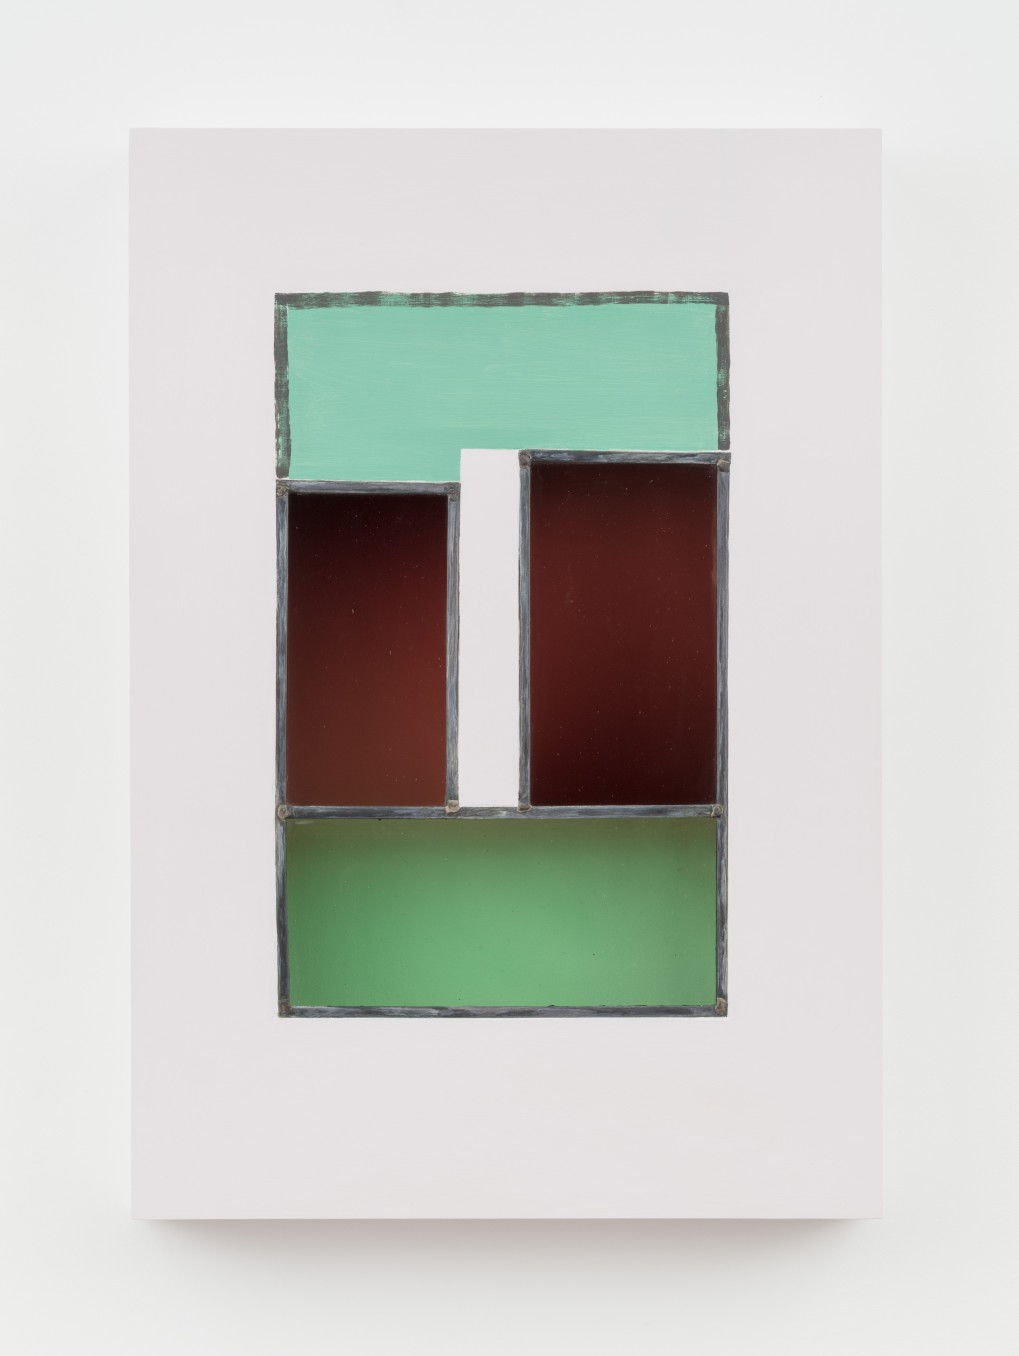 Jessica Warboys HOUR III, 2019 Acrylic, antique glass, lead came, plywood 87 x 59.7 x 8.9 cm 34 1/4 x...